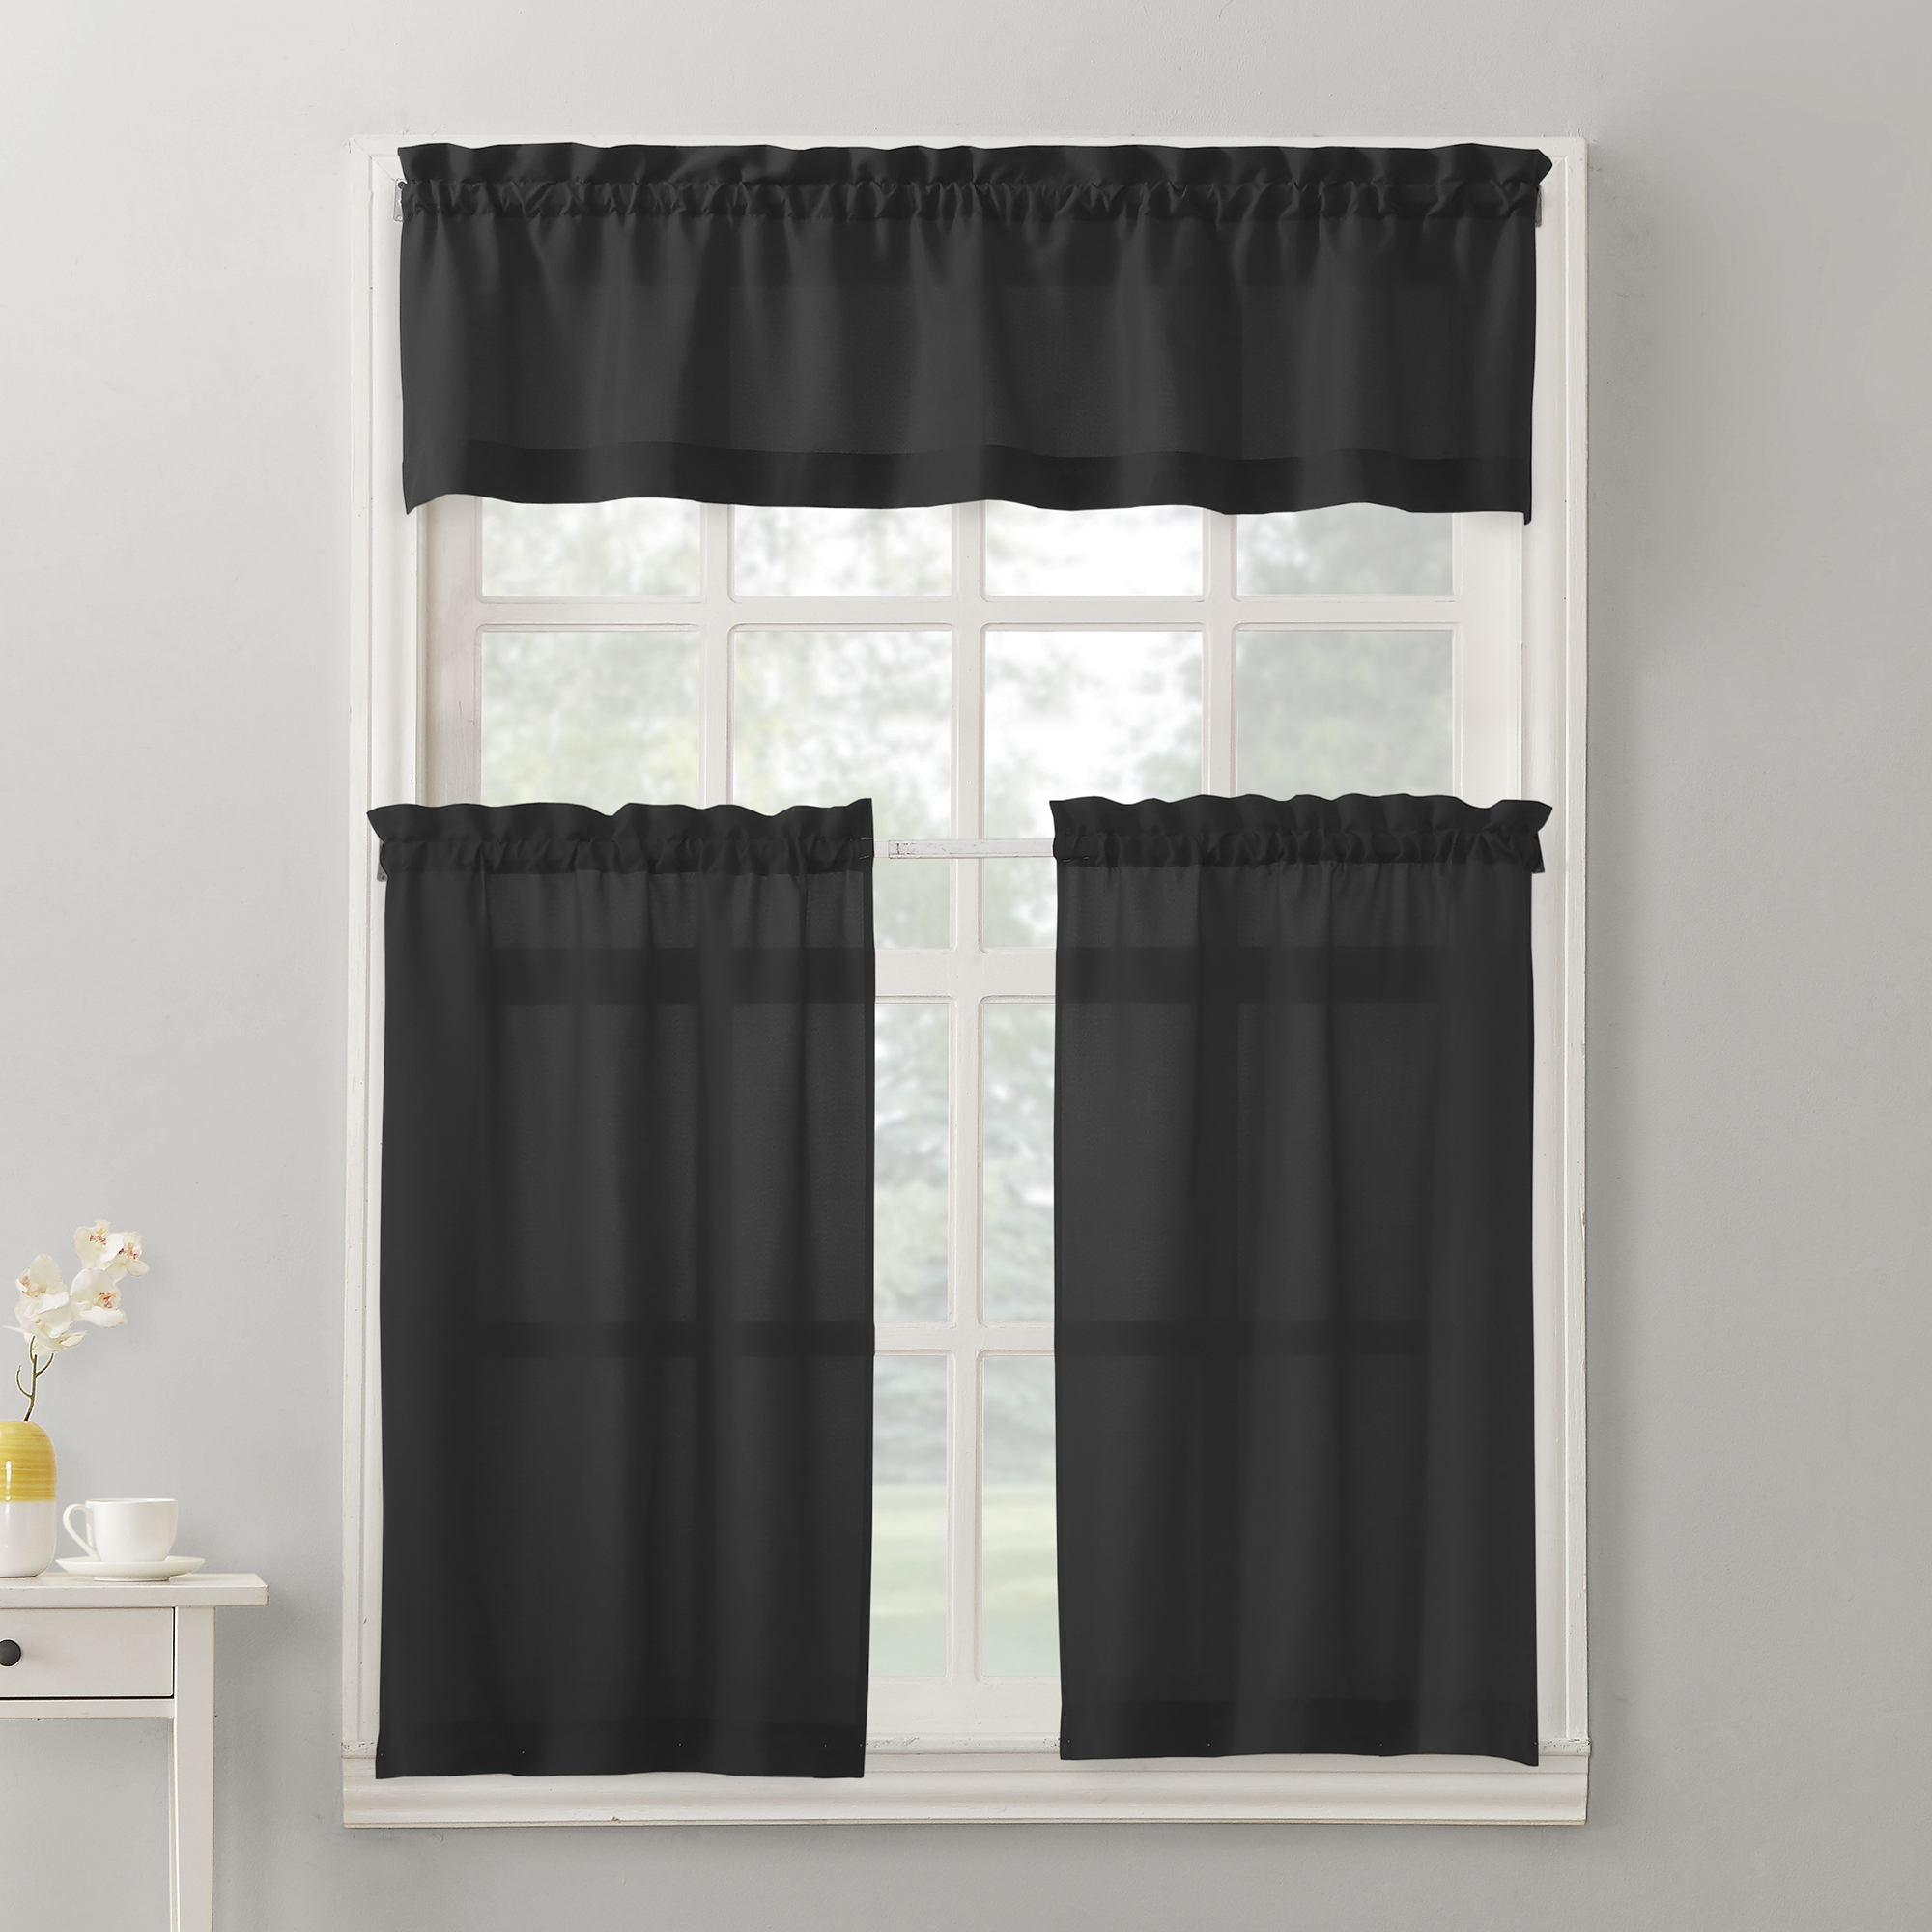 Mainstays Solid 3 Piece Kitchen Curtain Tier And Valance Set Throughout 2020 Grey Window Curtain Tier And Valance Sets (Gallery 5 of 20)